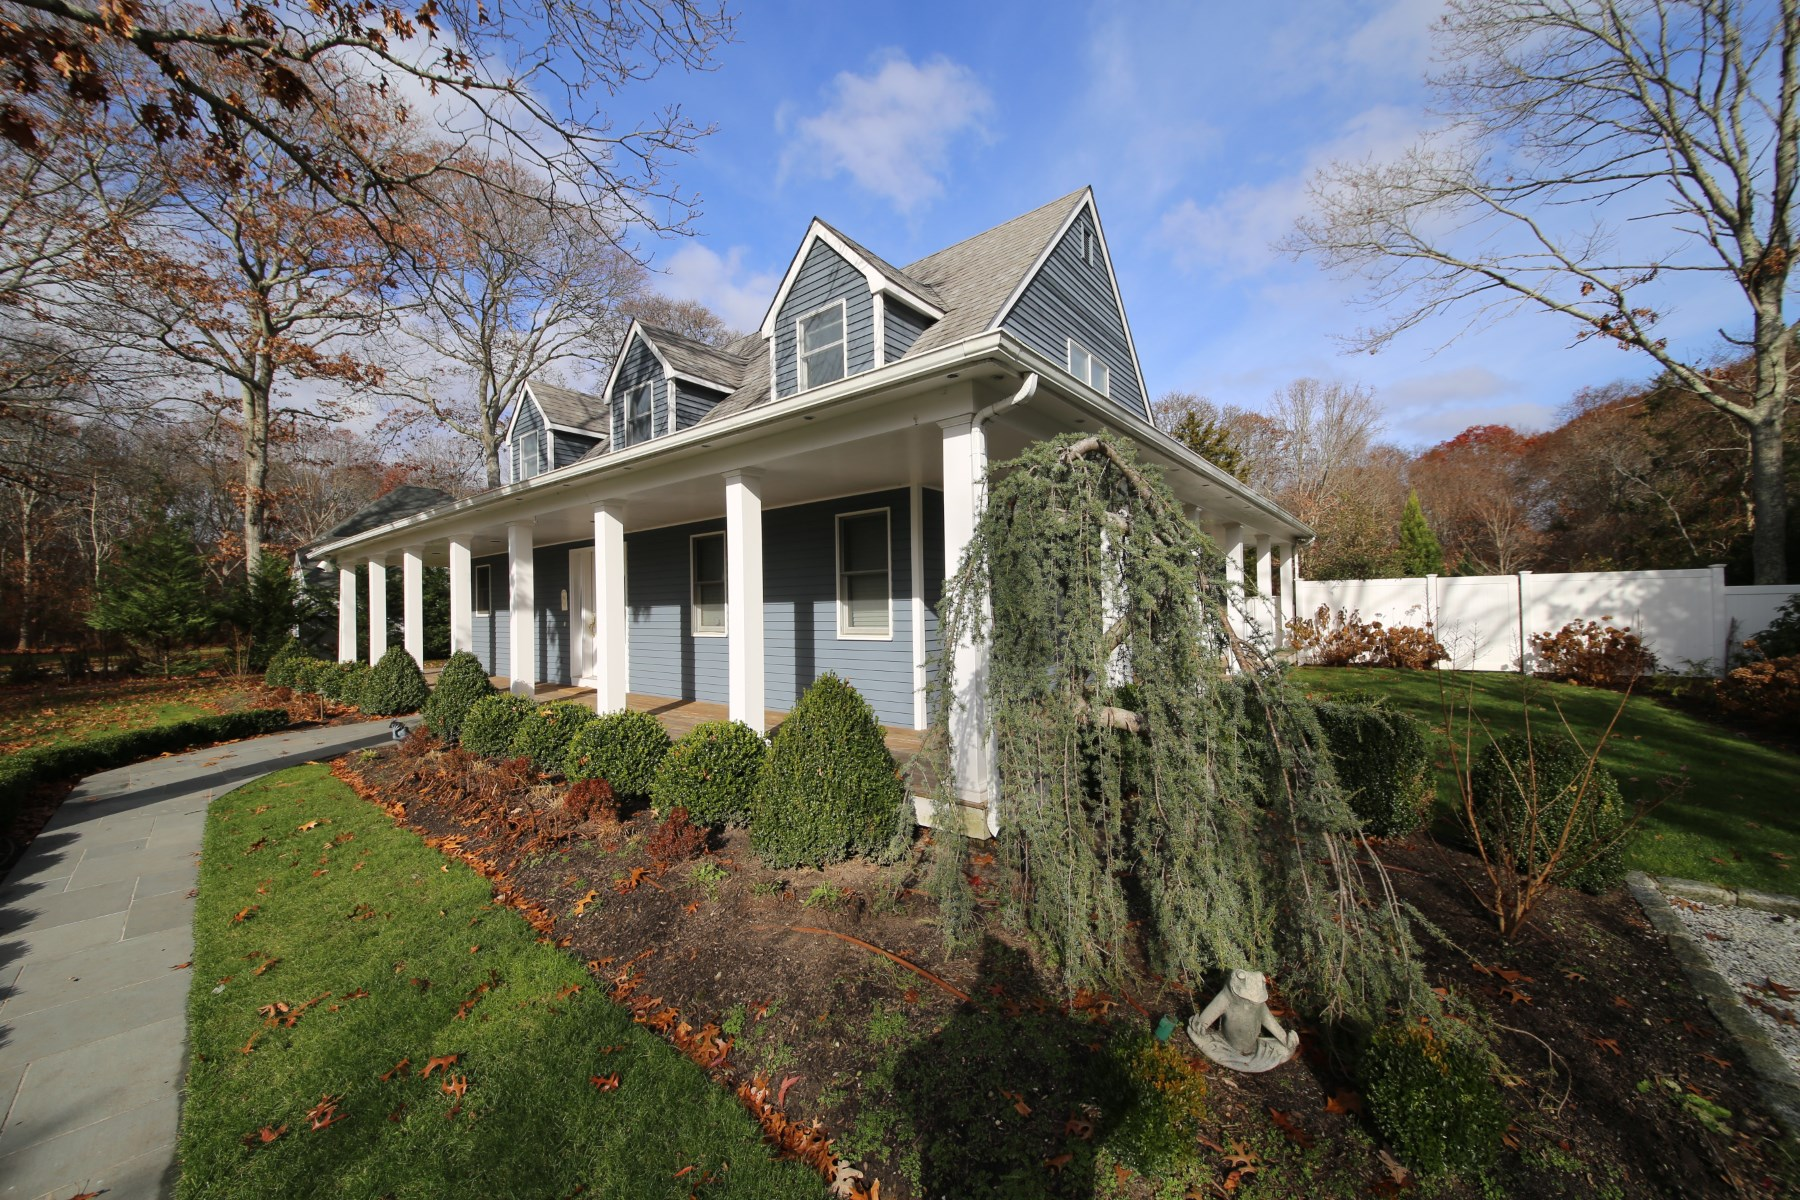 Single Family Home for Rent at Quiet, Comfortable Home in Bridgehampton Bridgehampton, New York 11932 United States